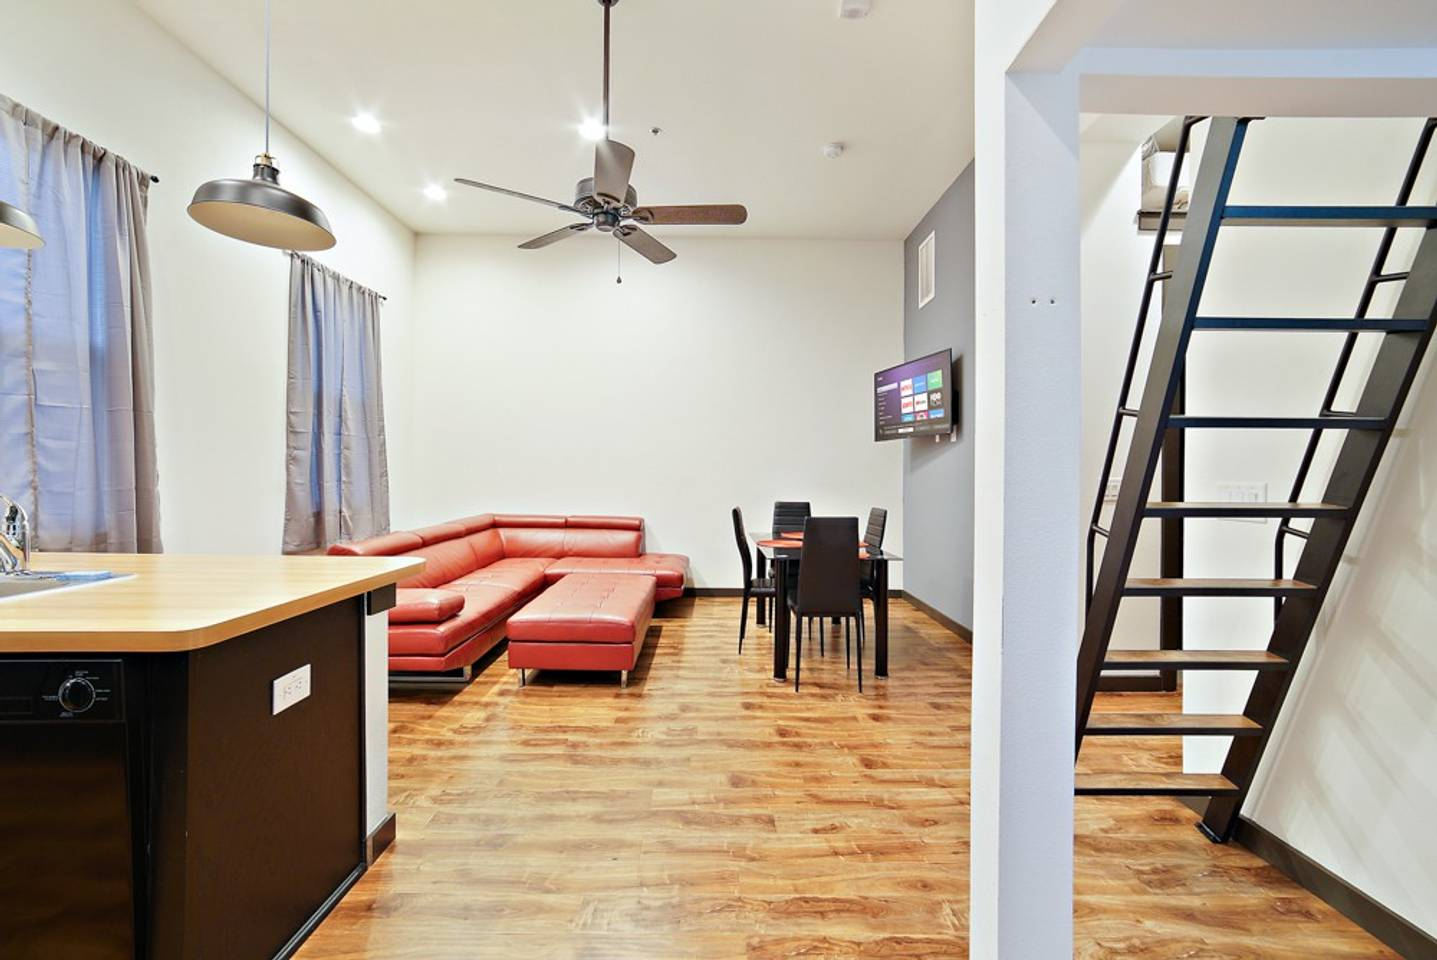 Loft Style Living in Downtown Tampa #206 photo 19134231